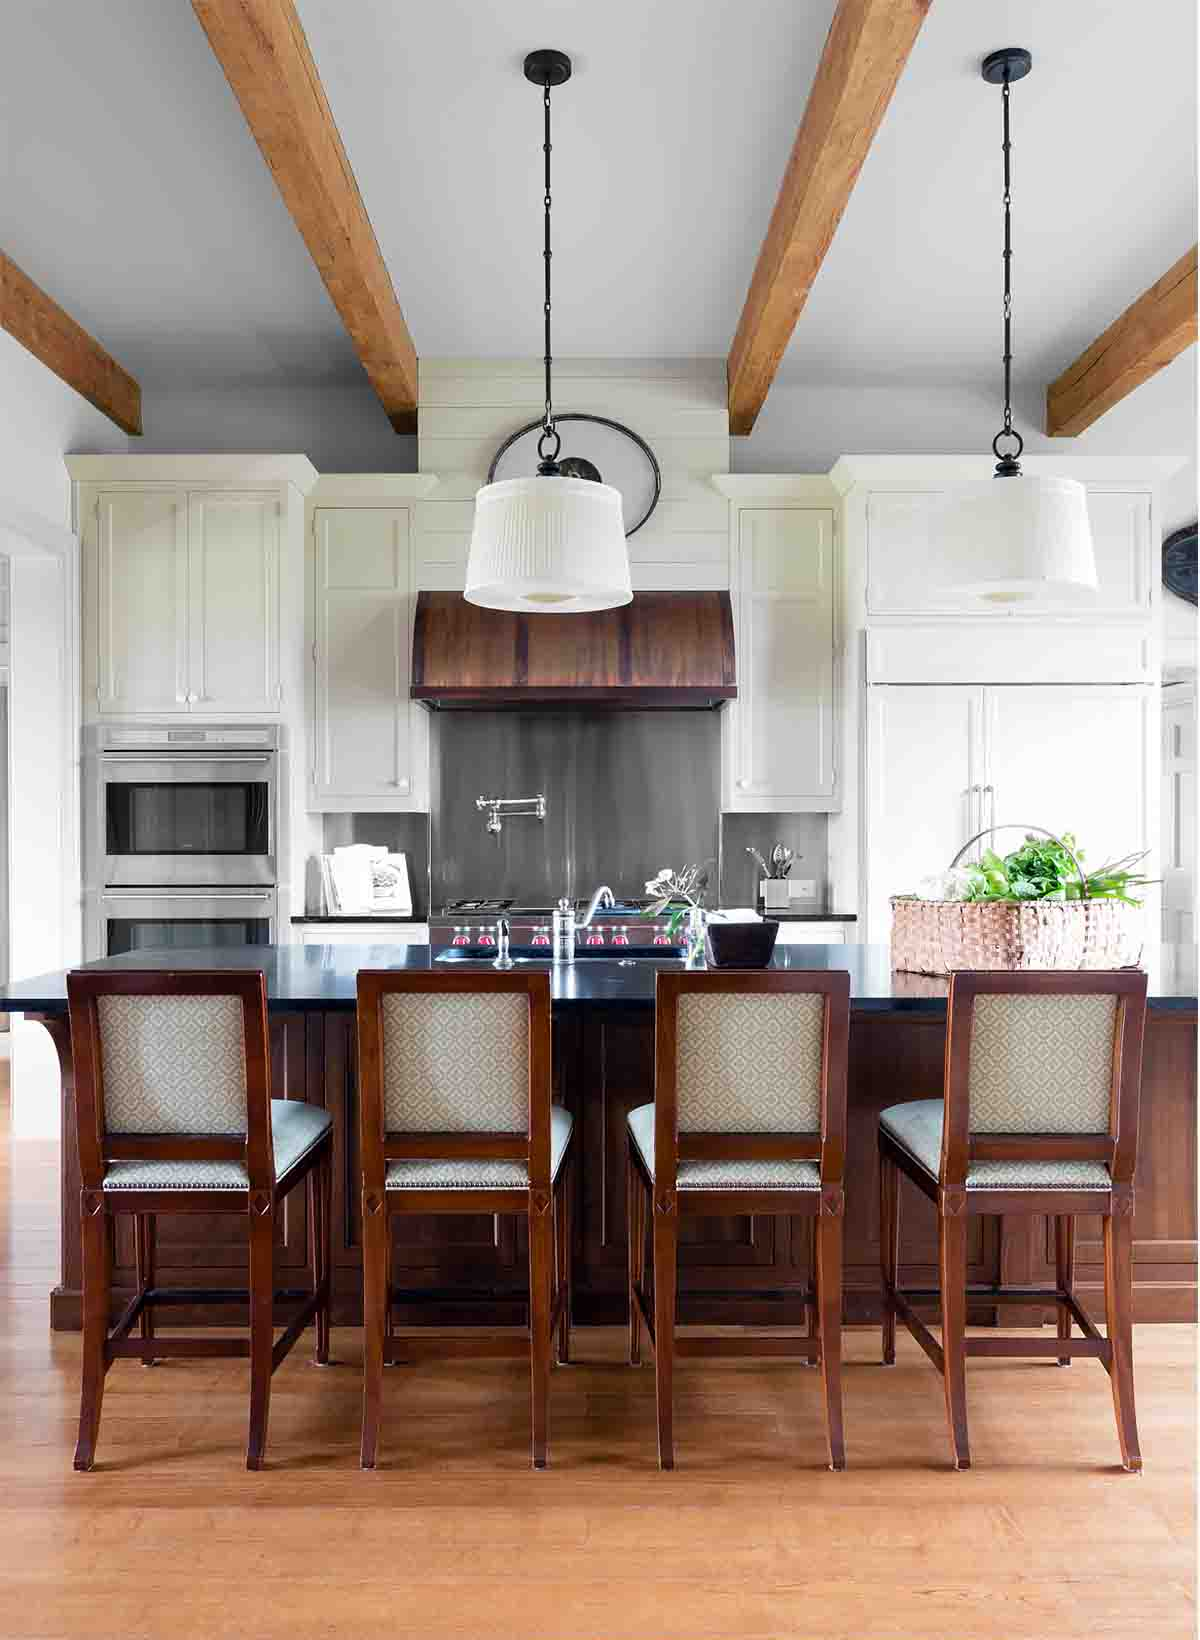 Kitchen Design - Historic Nashville Home - R.Higgins Interiors